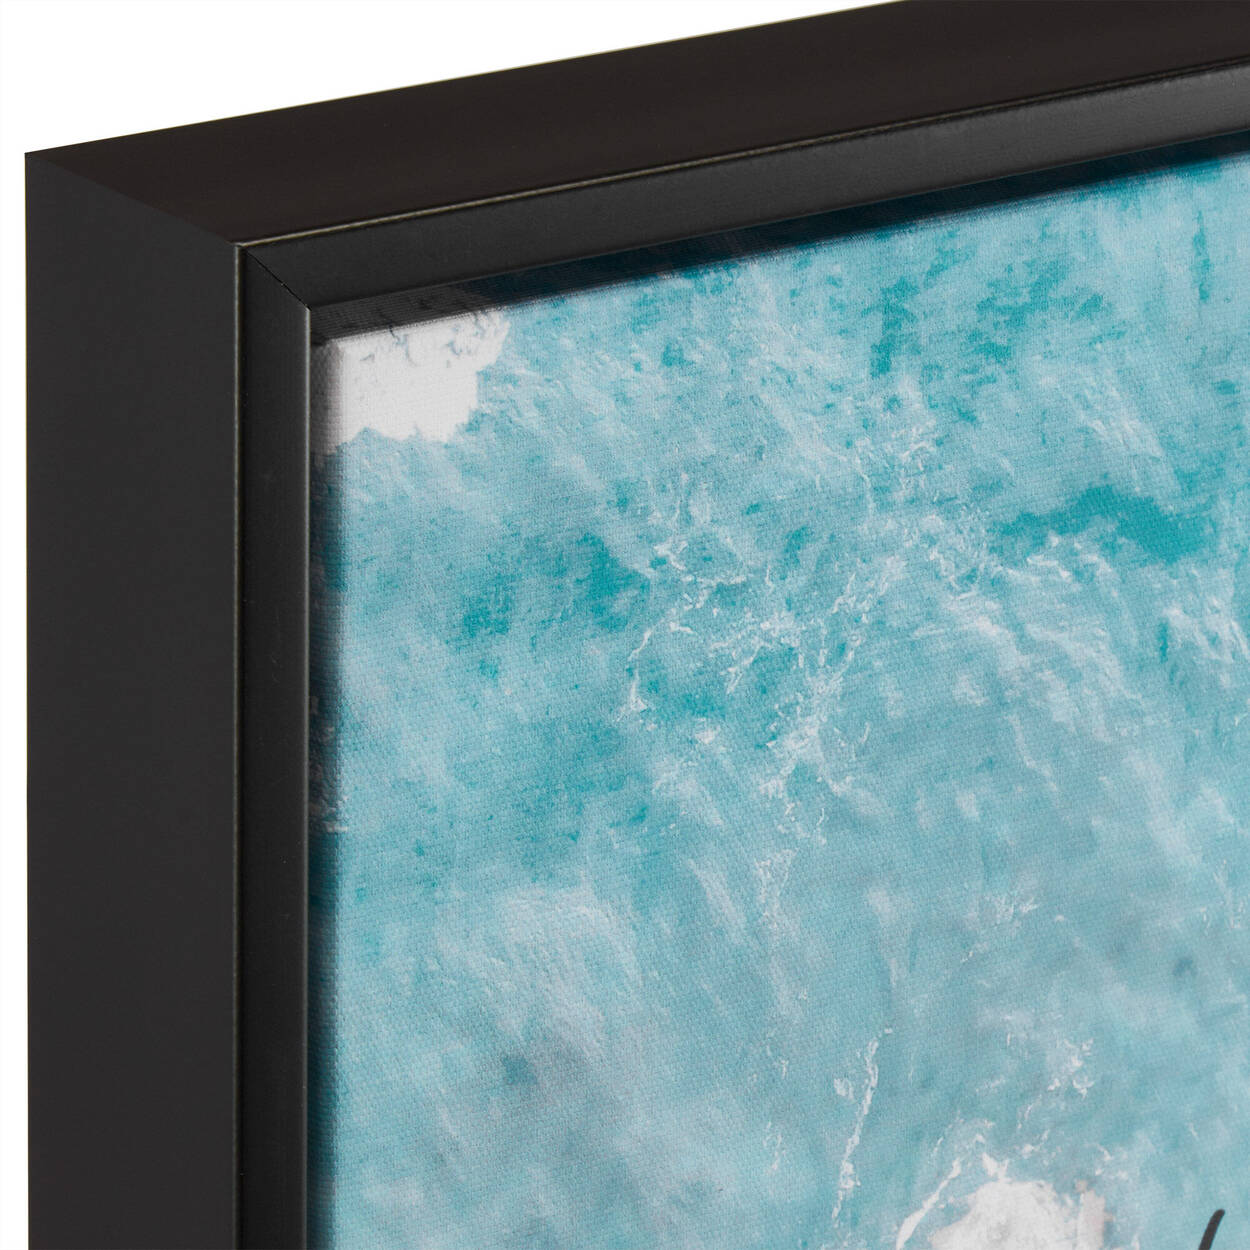 Ocean and Typography Printed Framed Art